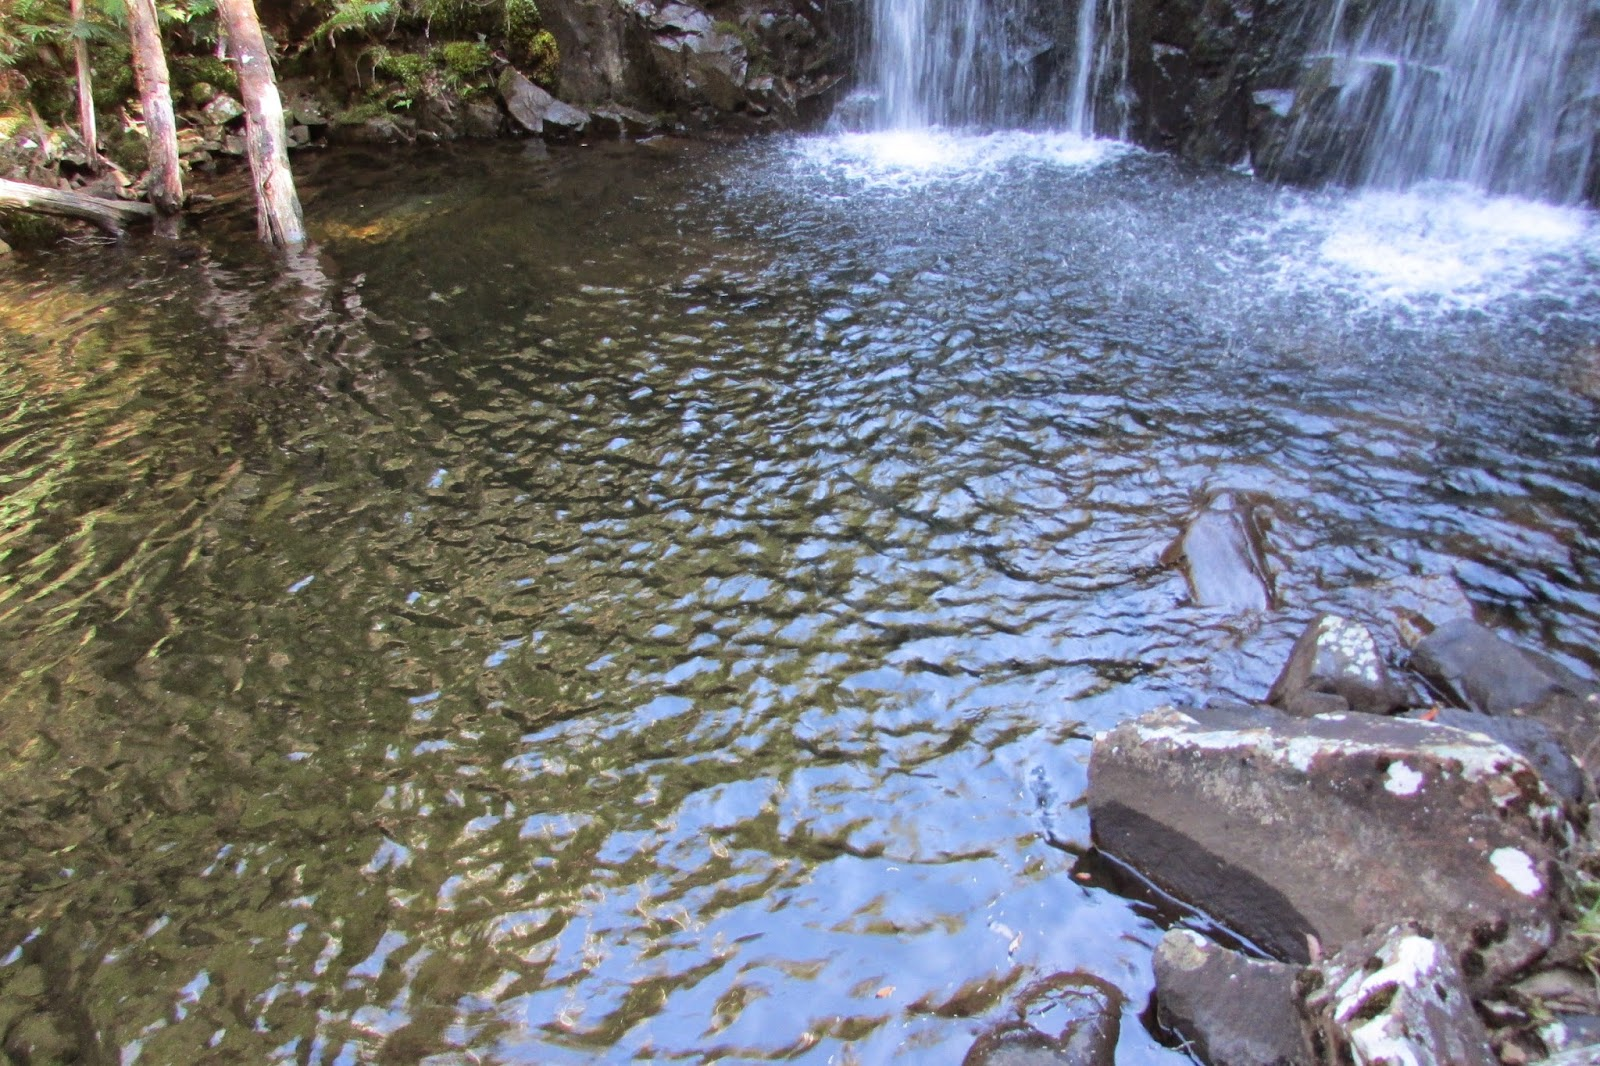 Willies falls hiking south east tasmania - Swimming pools in great falls montana ...